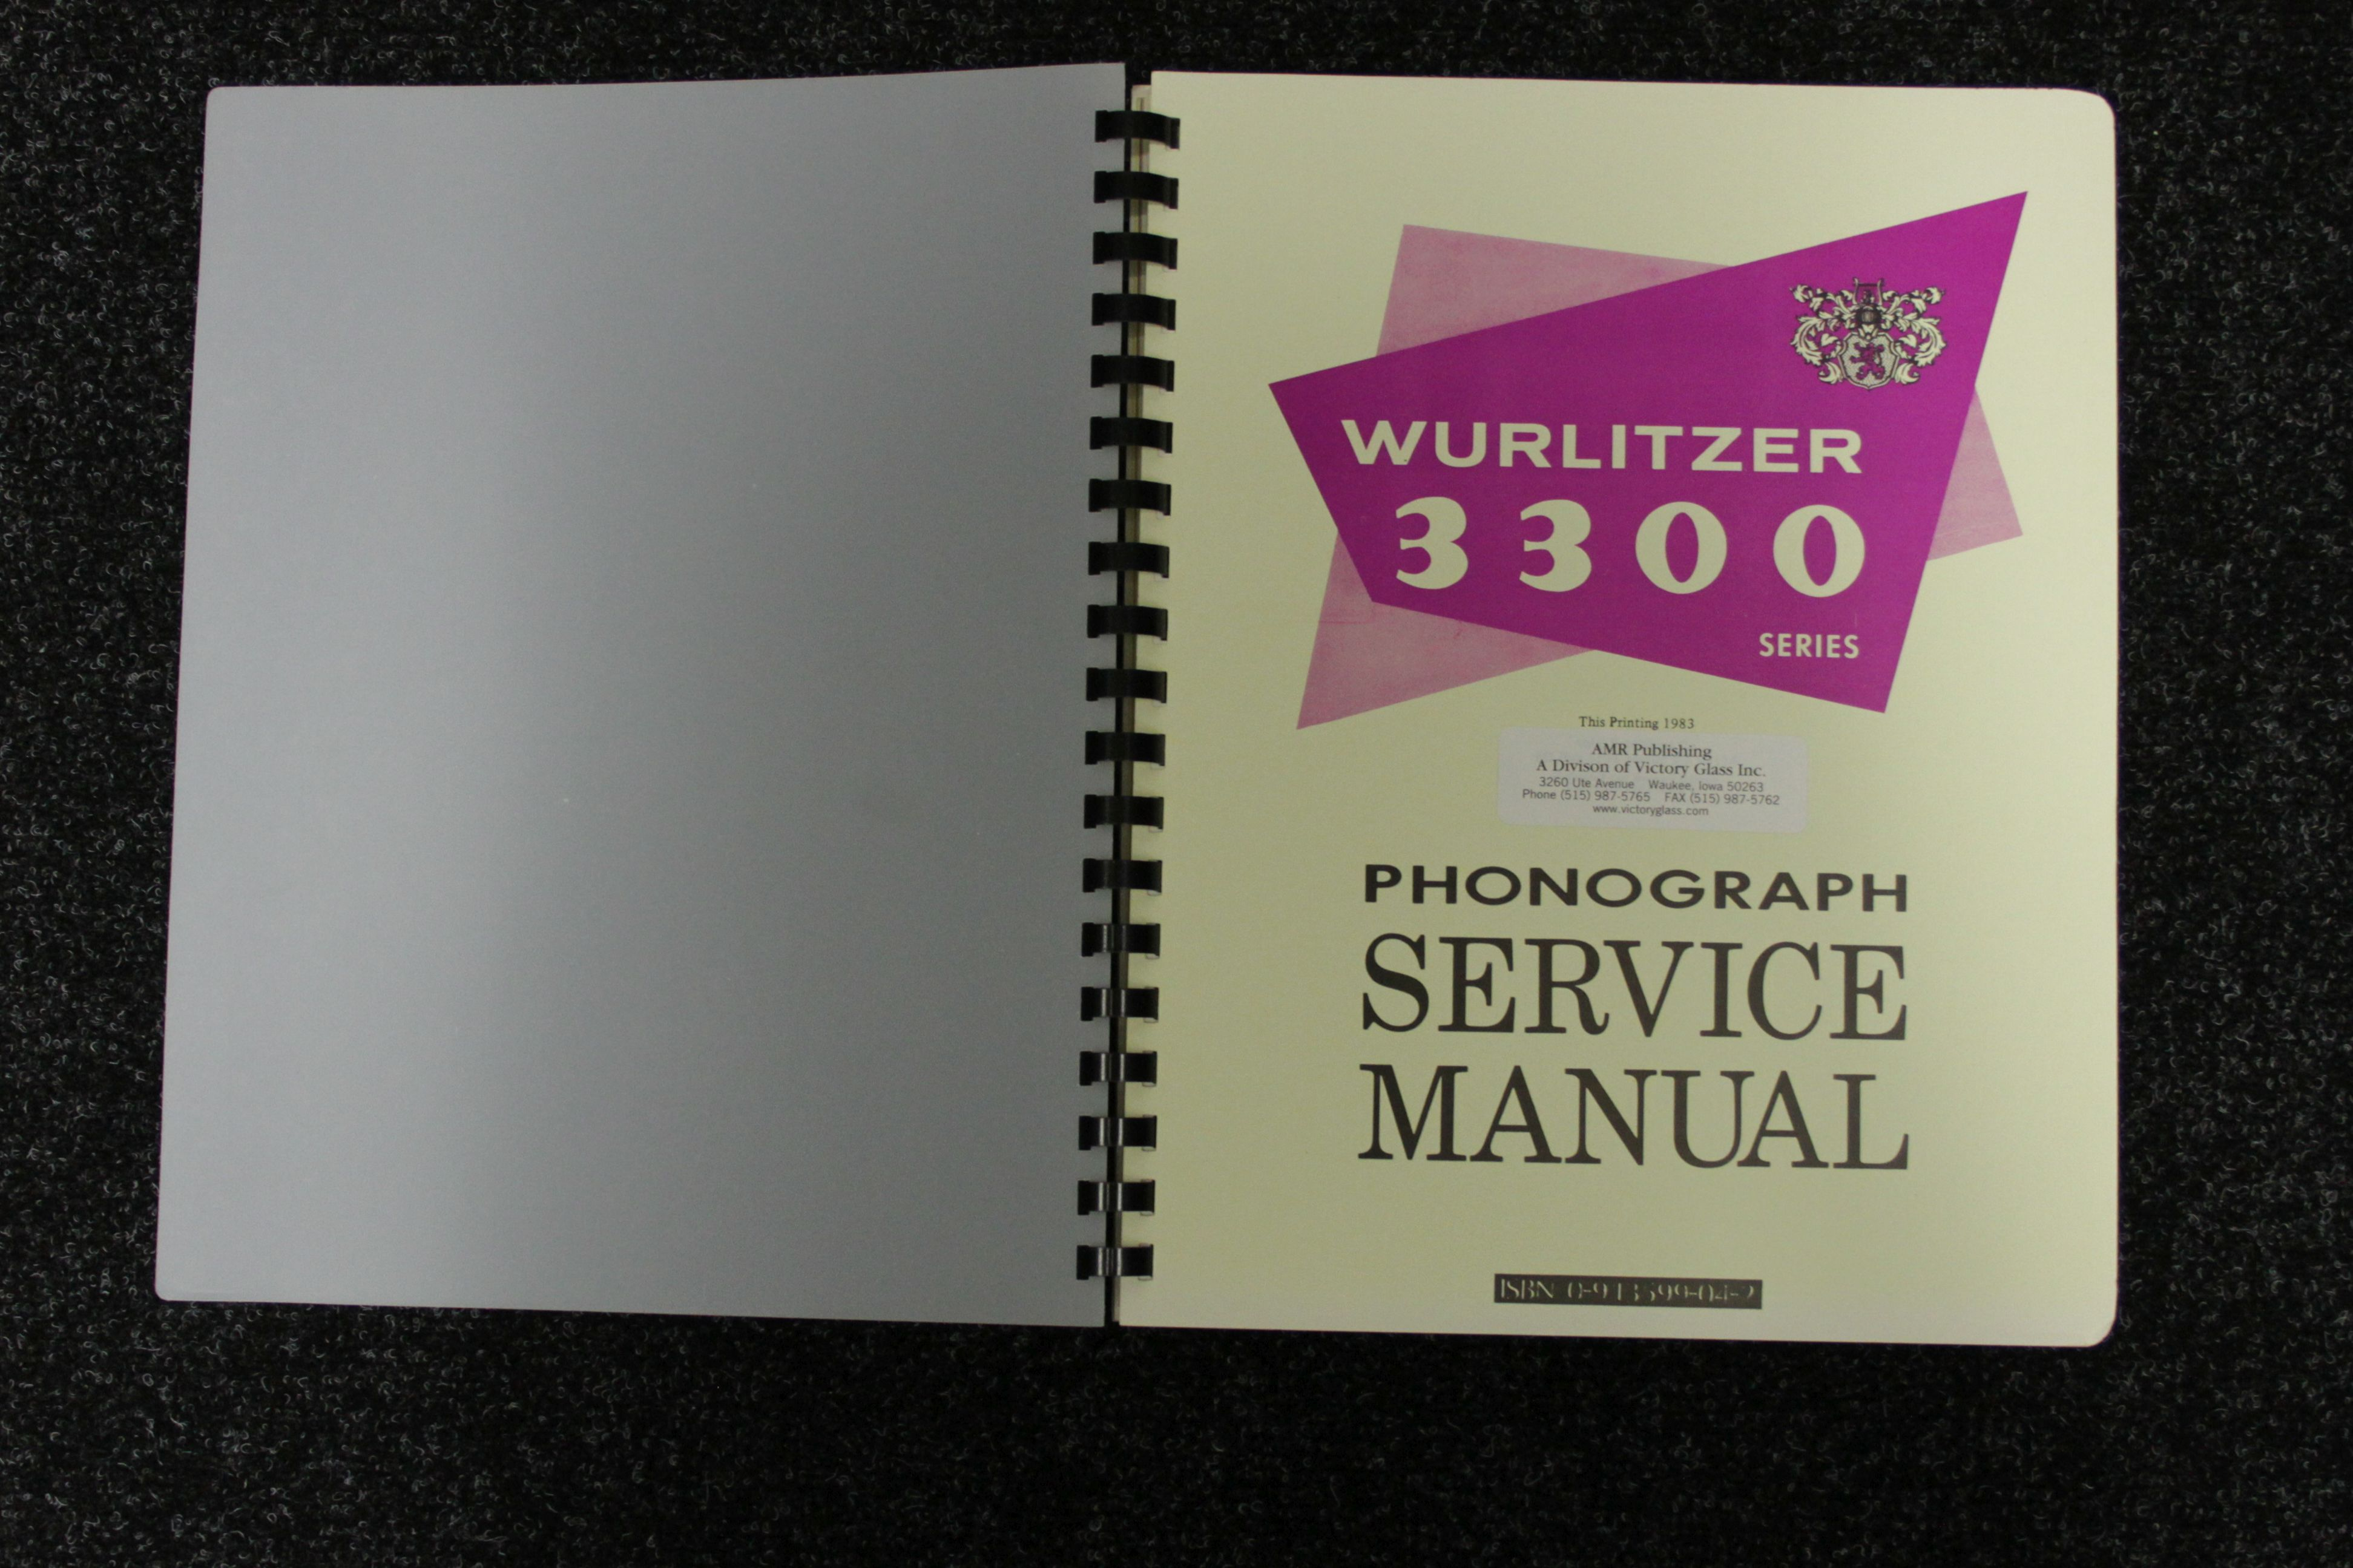 Wurlitzer Service Manual 3300 series